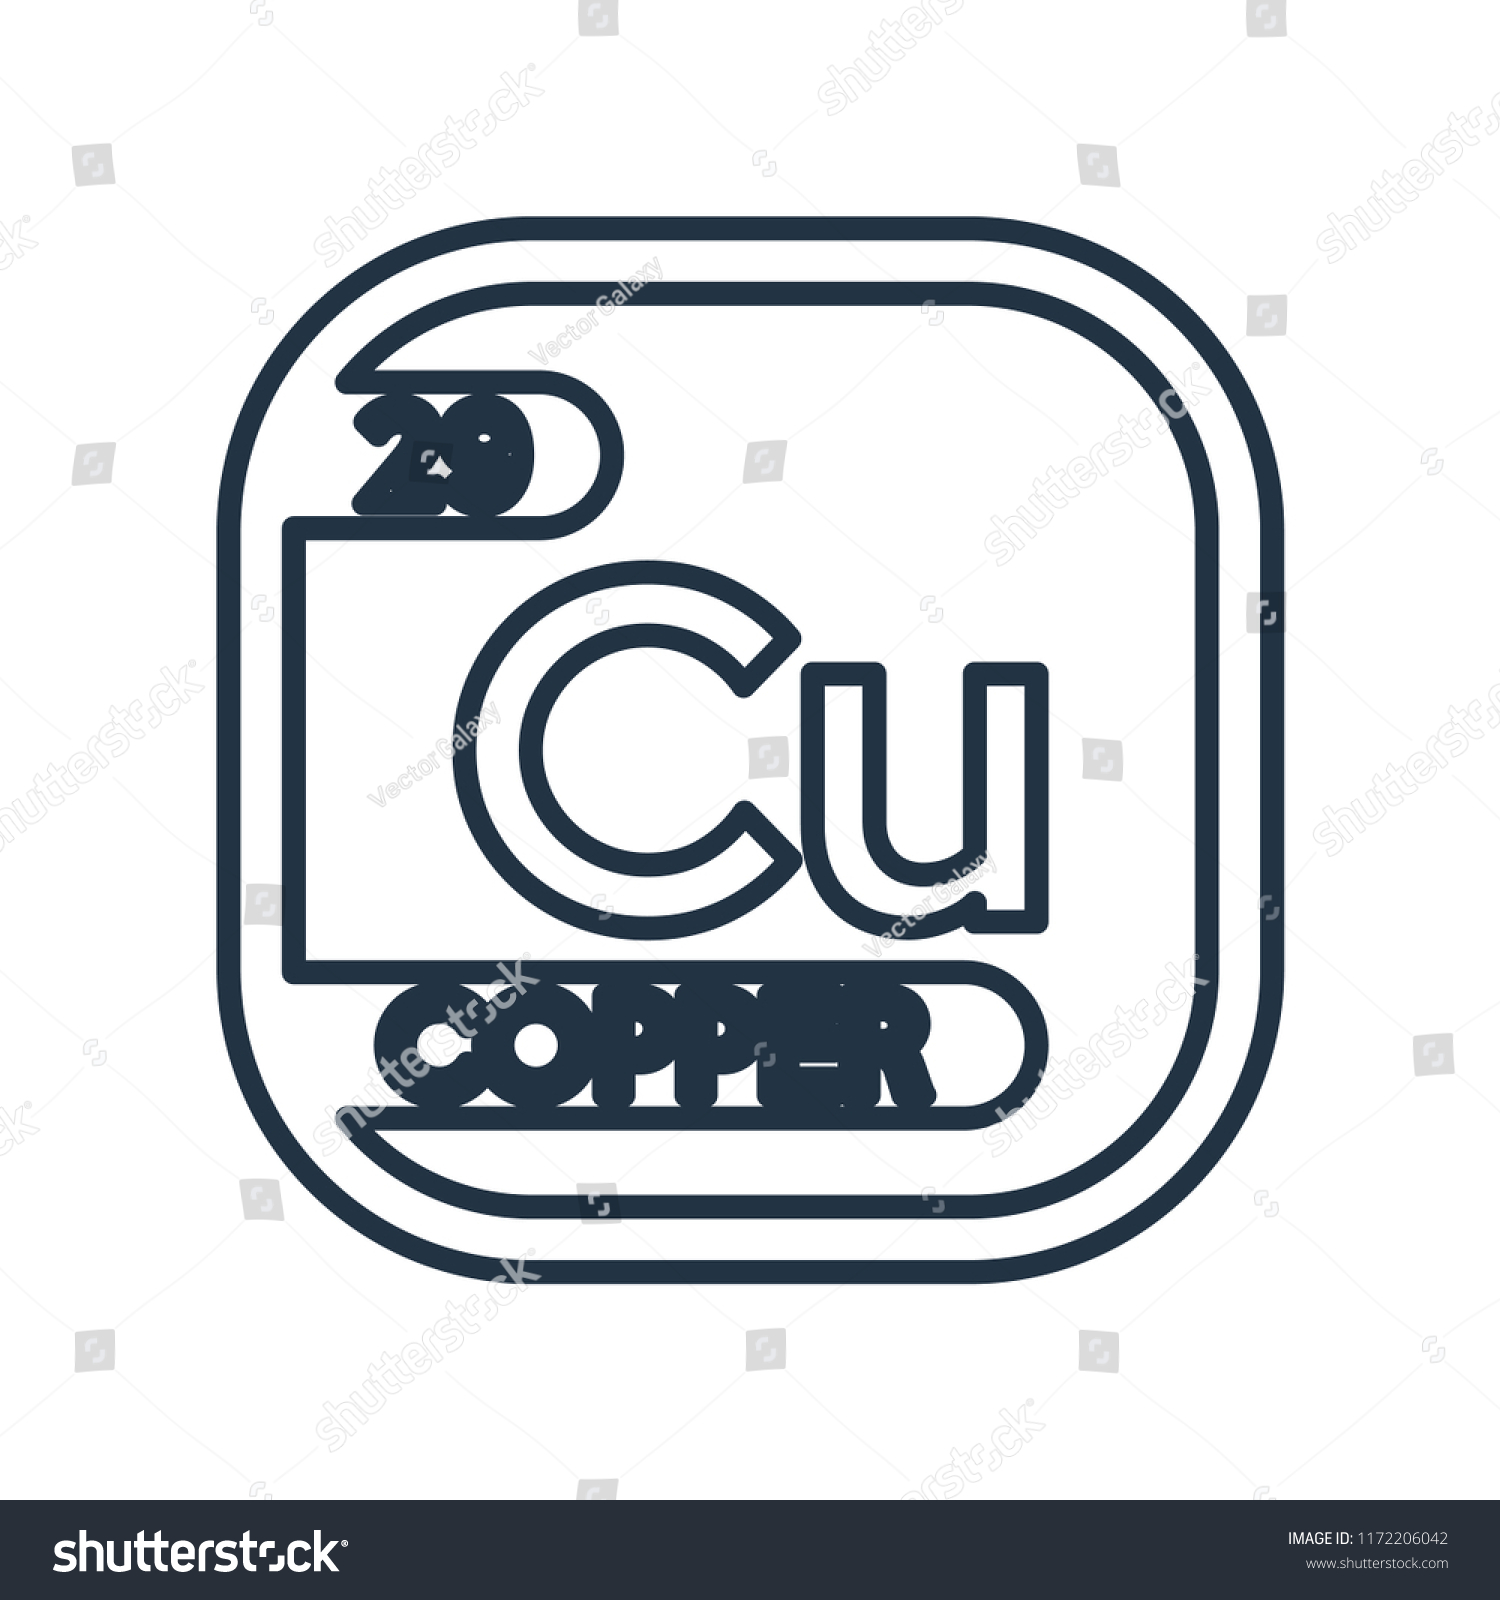 Copper Symbol Periodic Table Isolated On Stock Vector Royalty Free